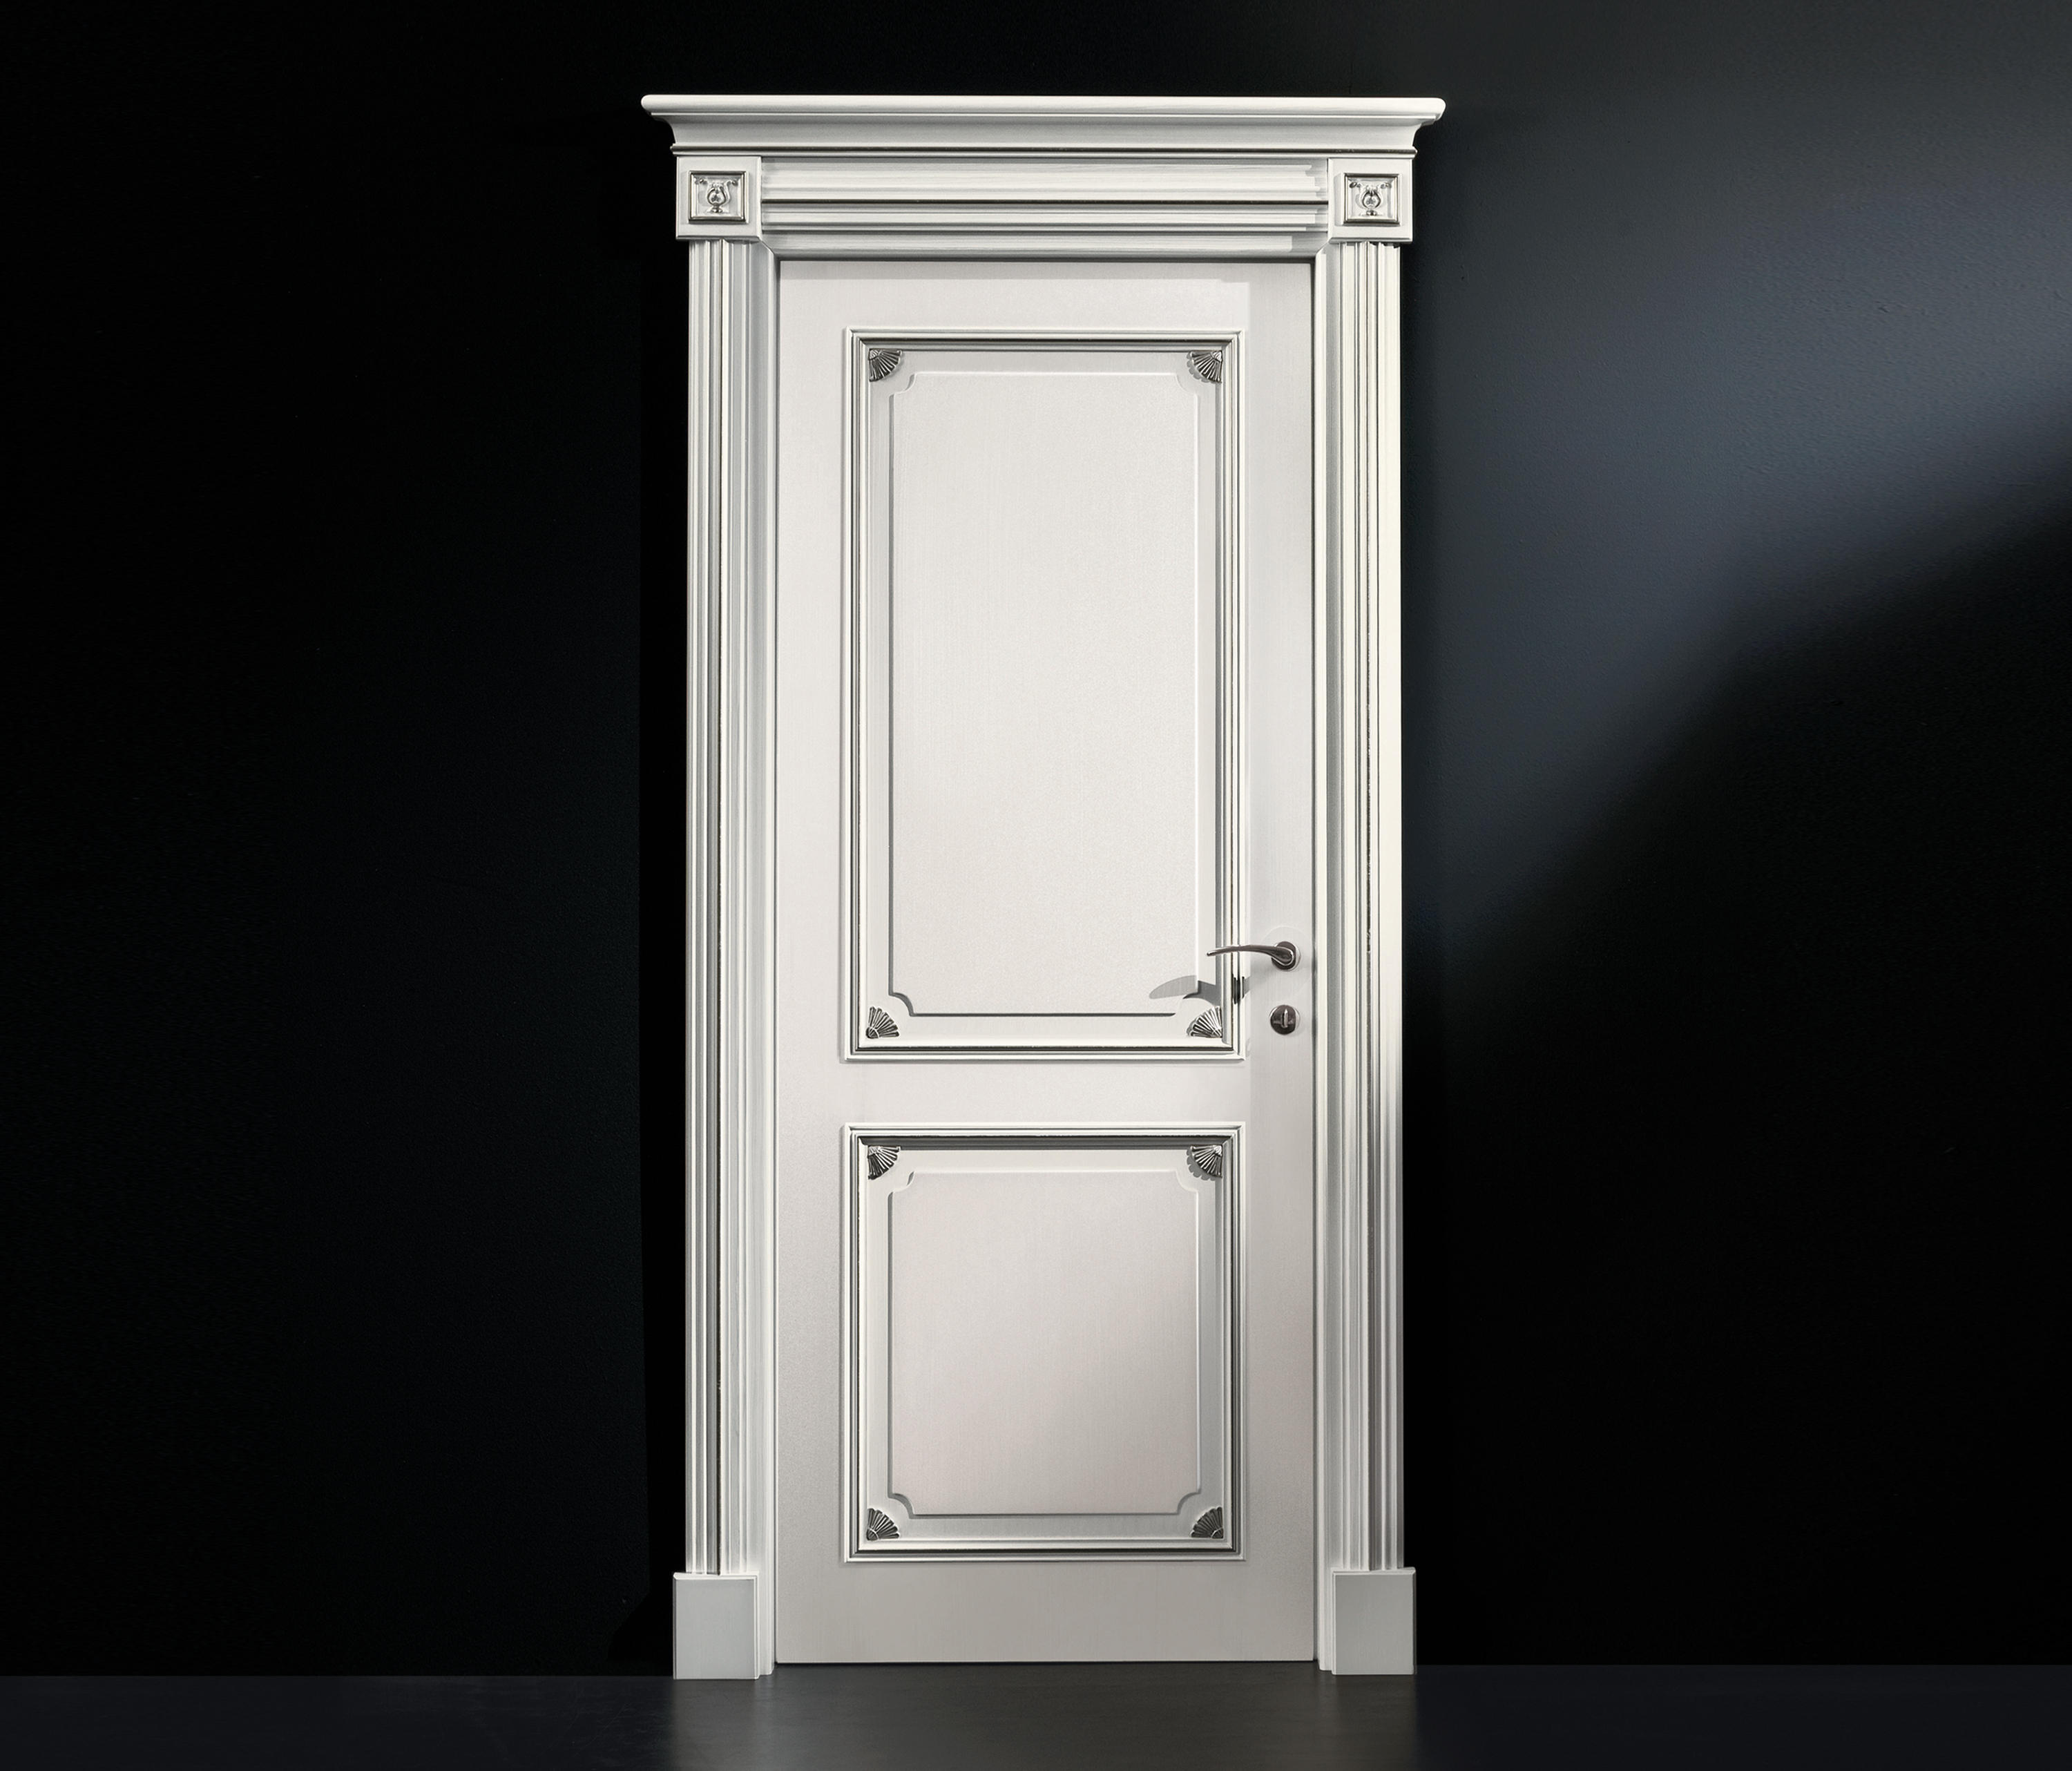 CASTADIVA - Internal doors from TRE-P & TRE-Più | Architonic